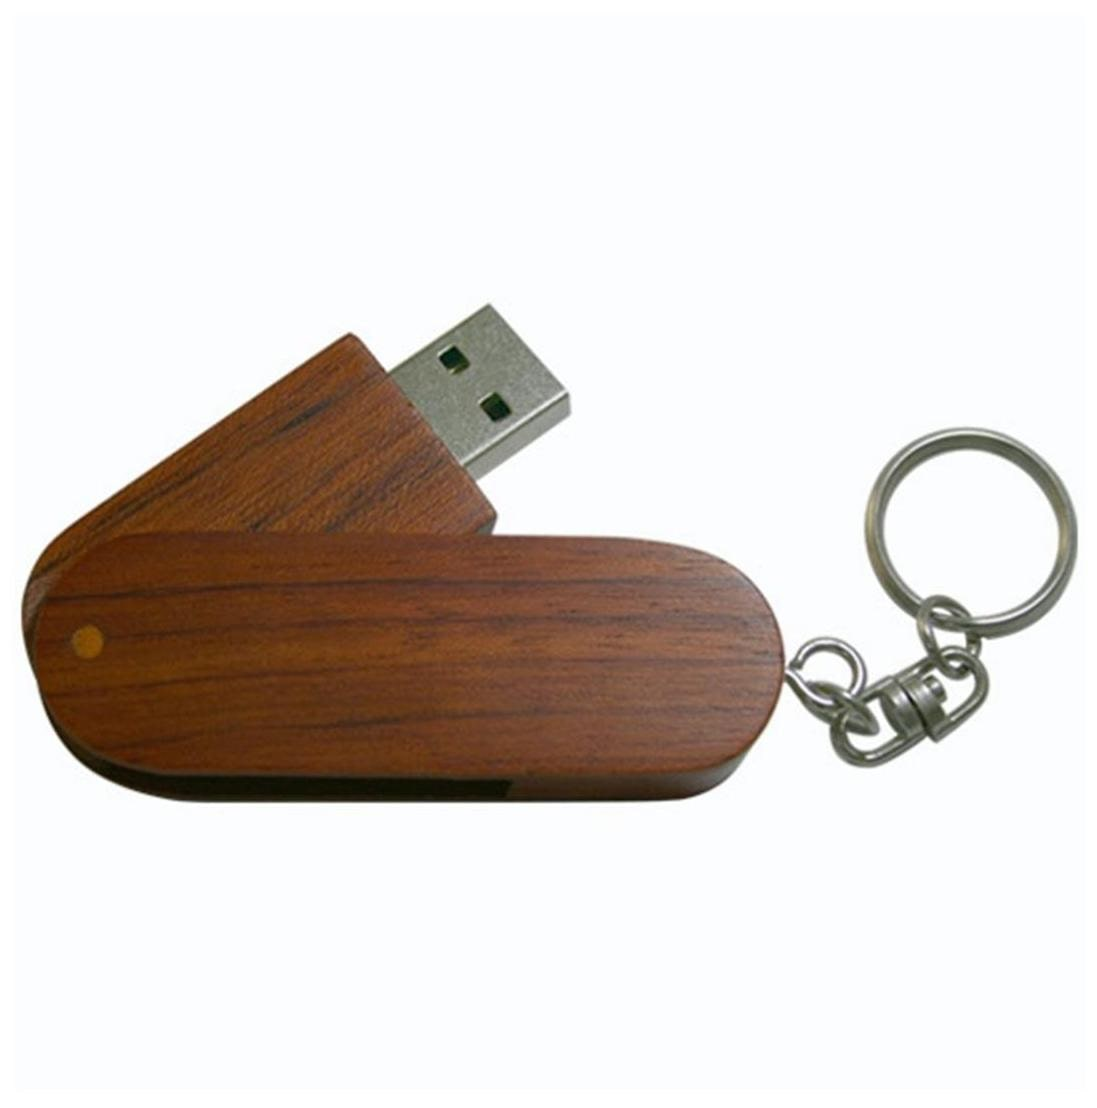 nexShop Swivel Wooden Thumb Pendrive 8  GB USB 2.0 Pendrive   Brown